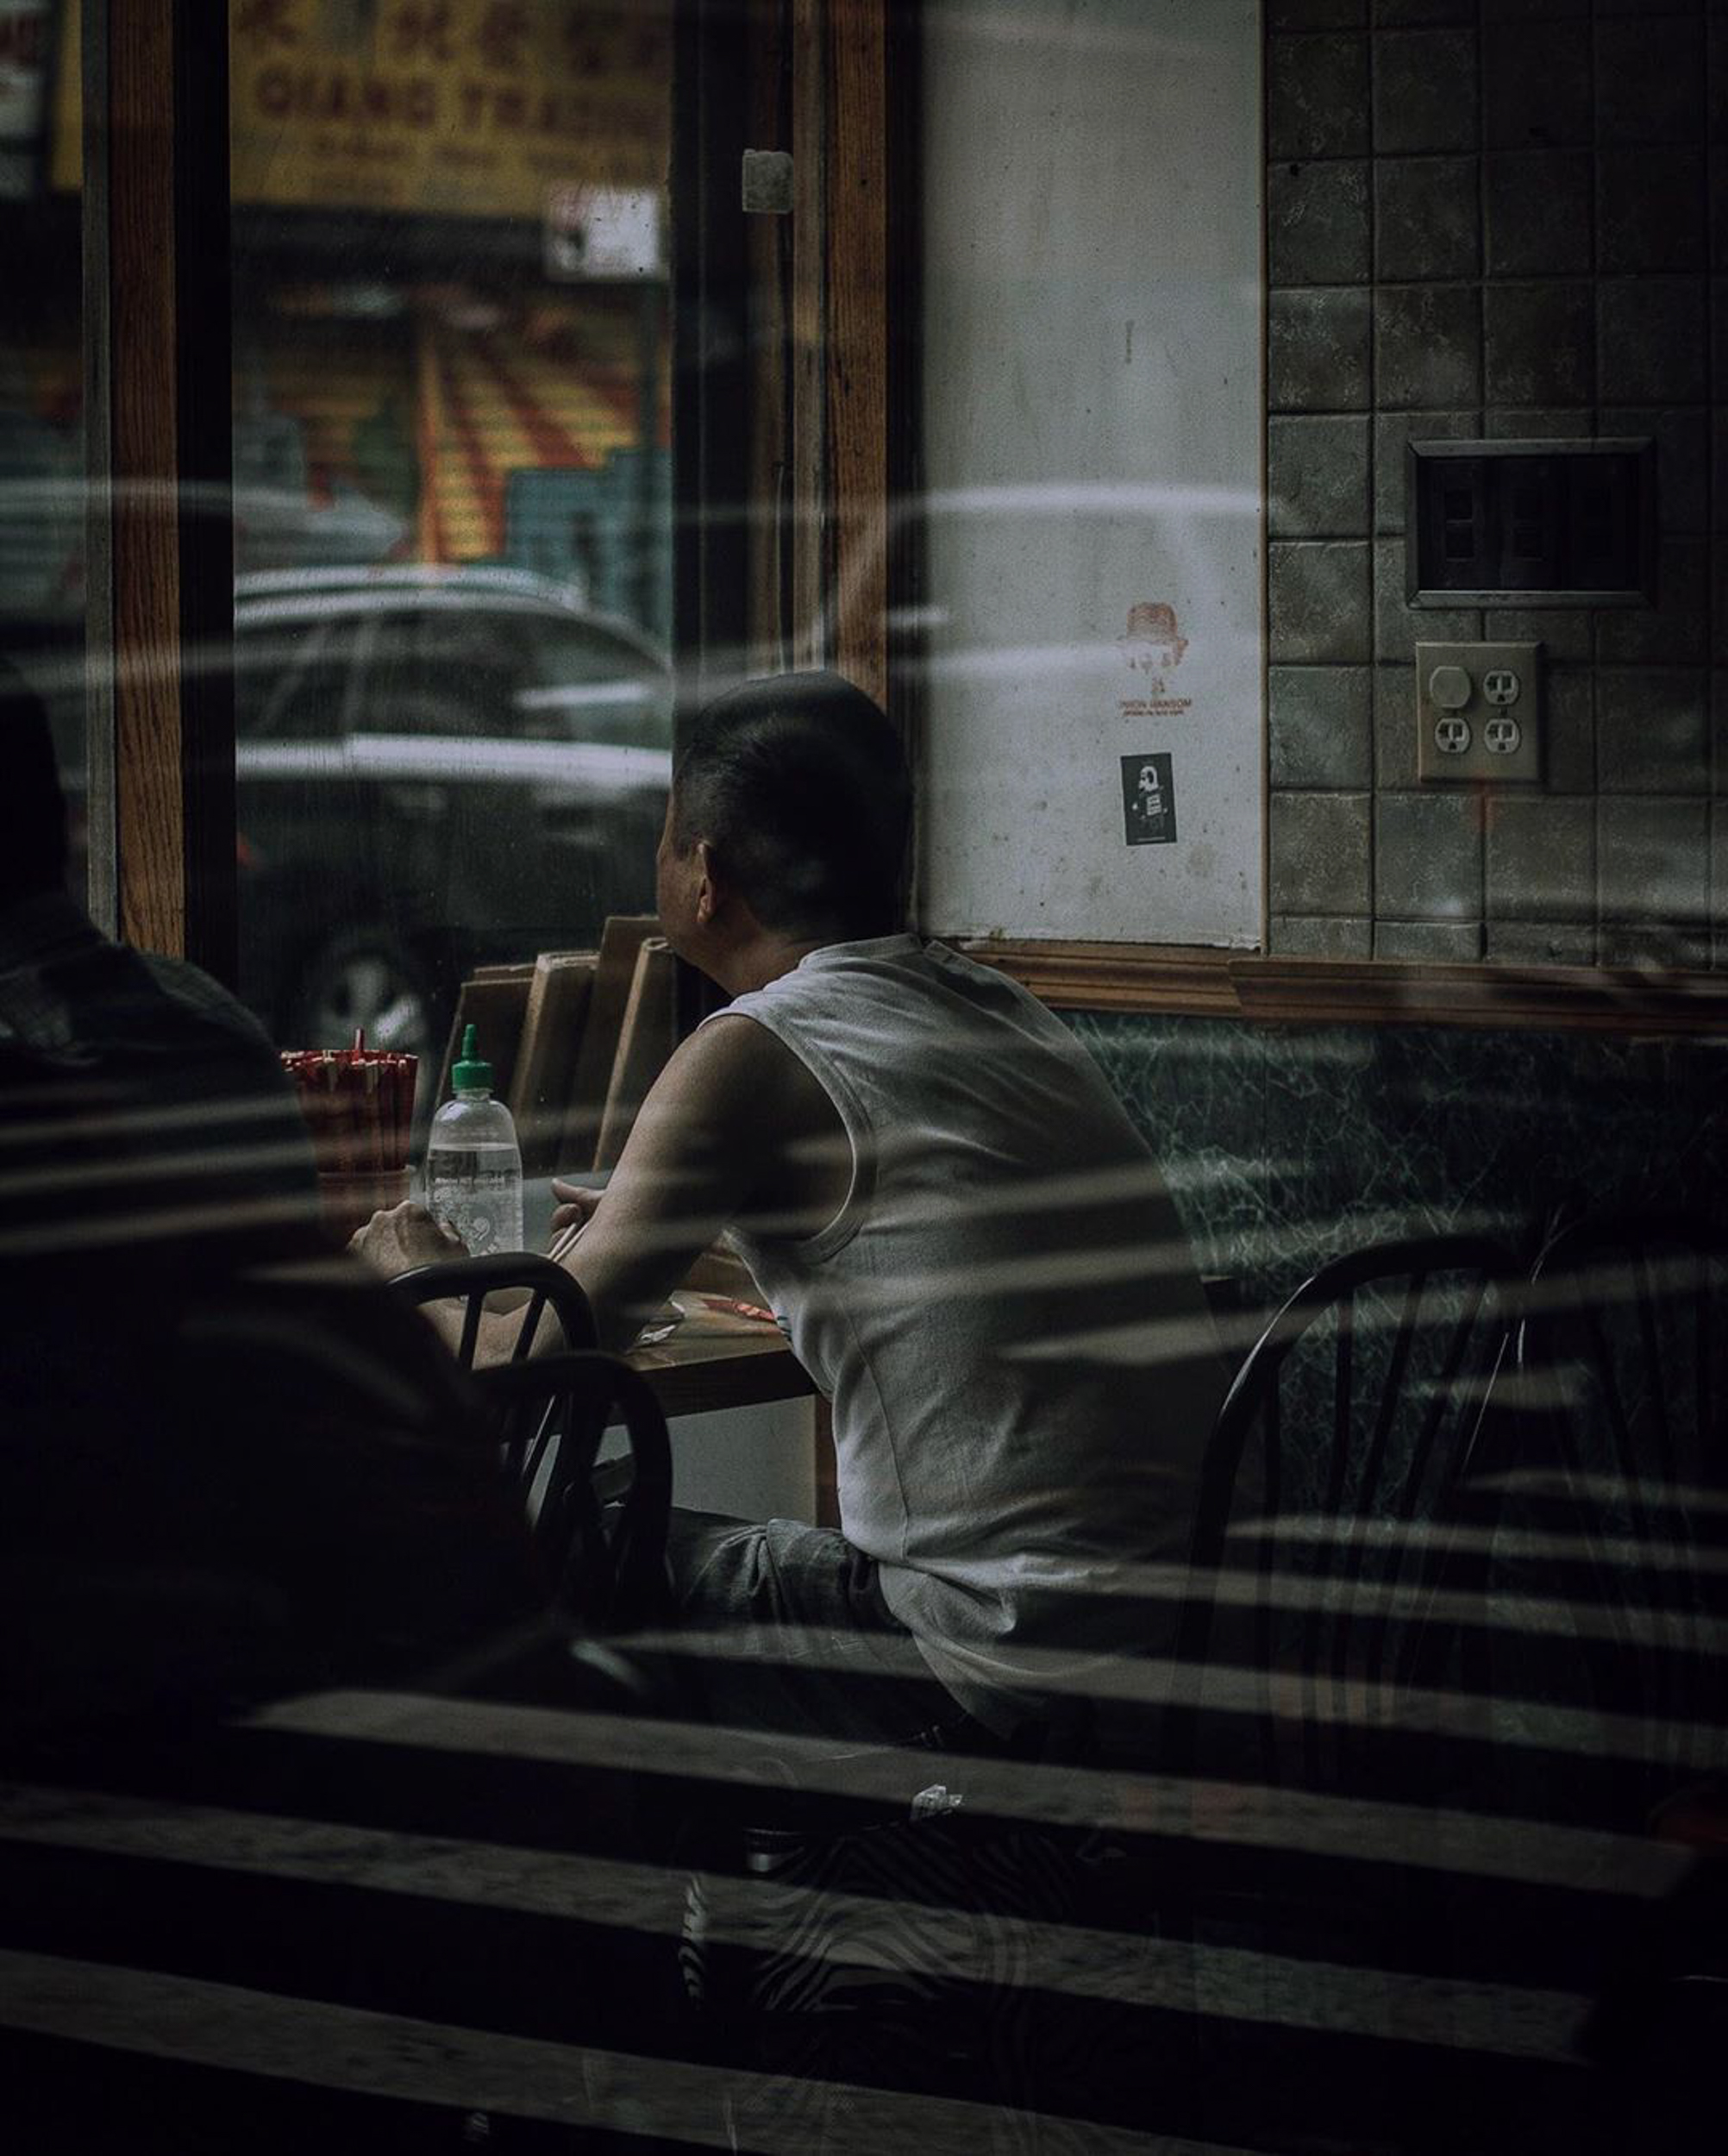 man sitting in a bar, street photography of a woman in the window, old man sitting in a diner, michelle viljoen, photography, street photography, new york, new york street photography, reflection photography,